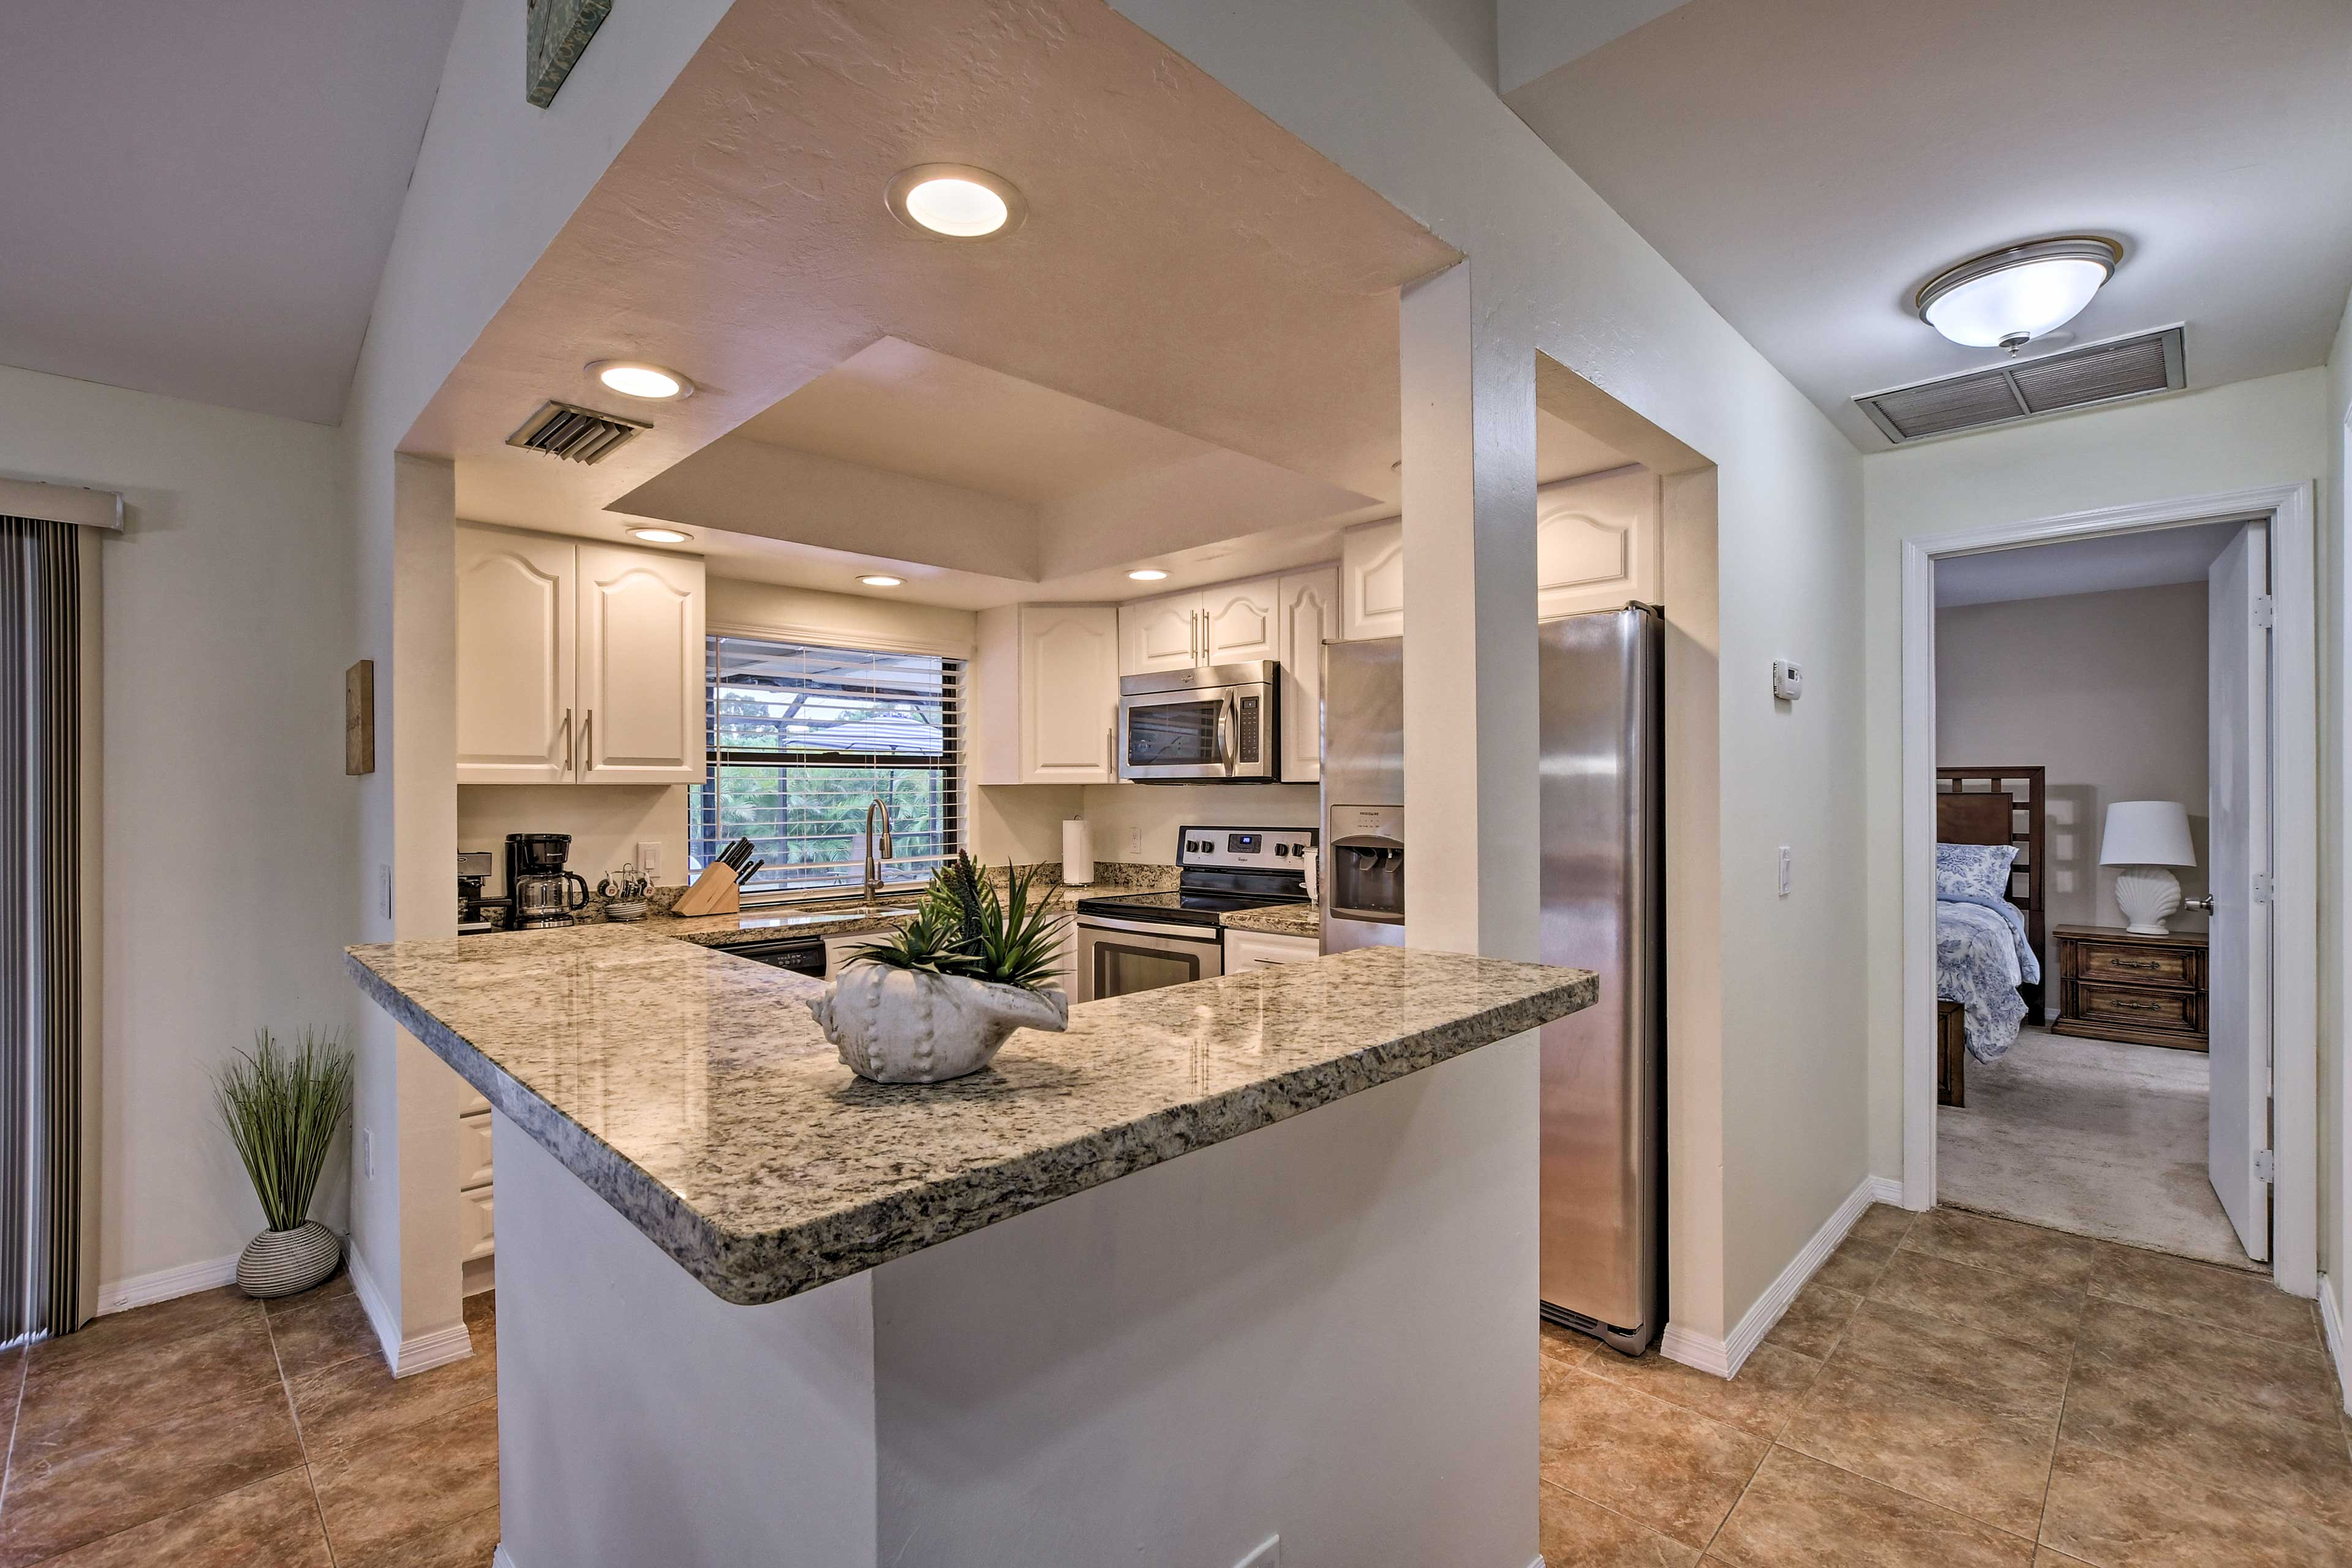 The fully equipped kitchen has an island perfect for setting up a buffet.